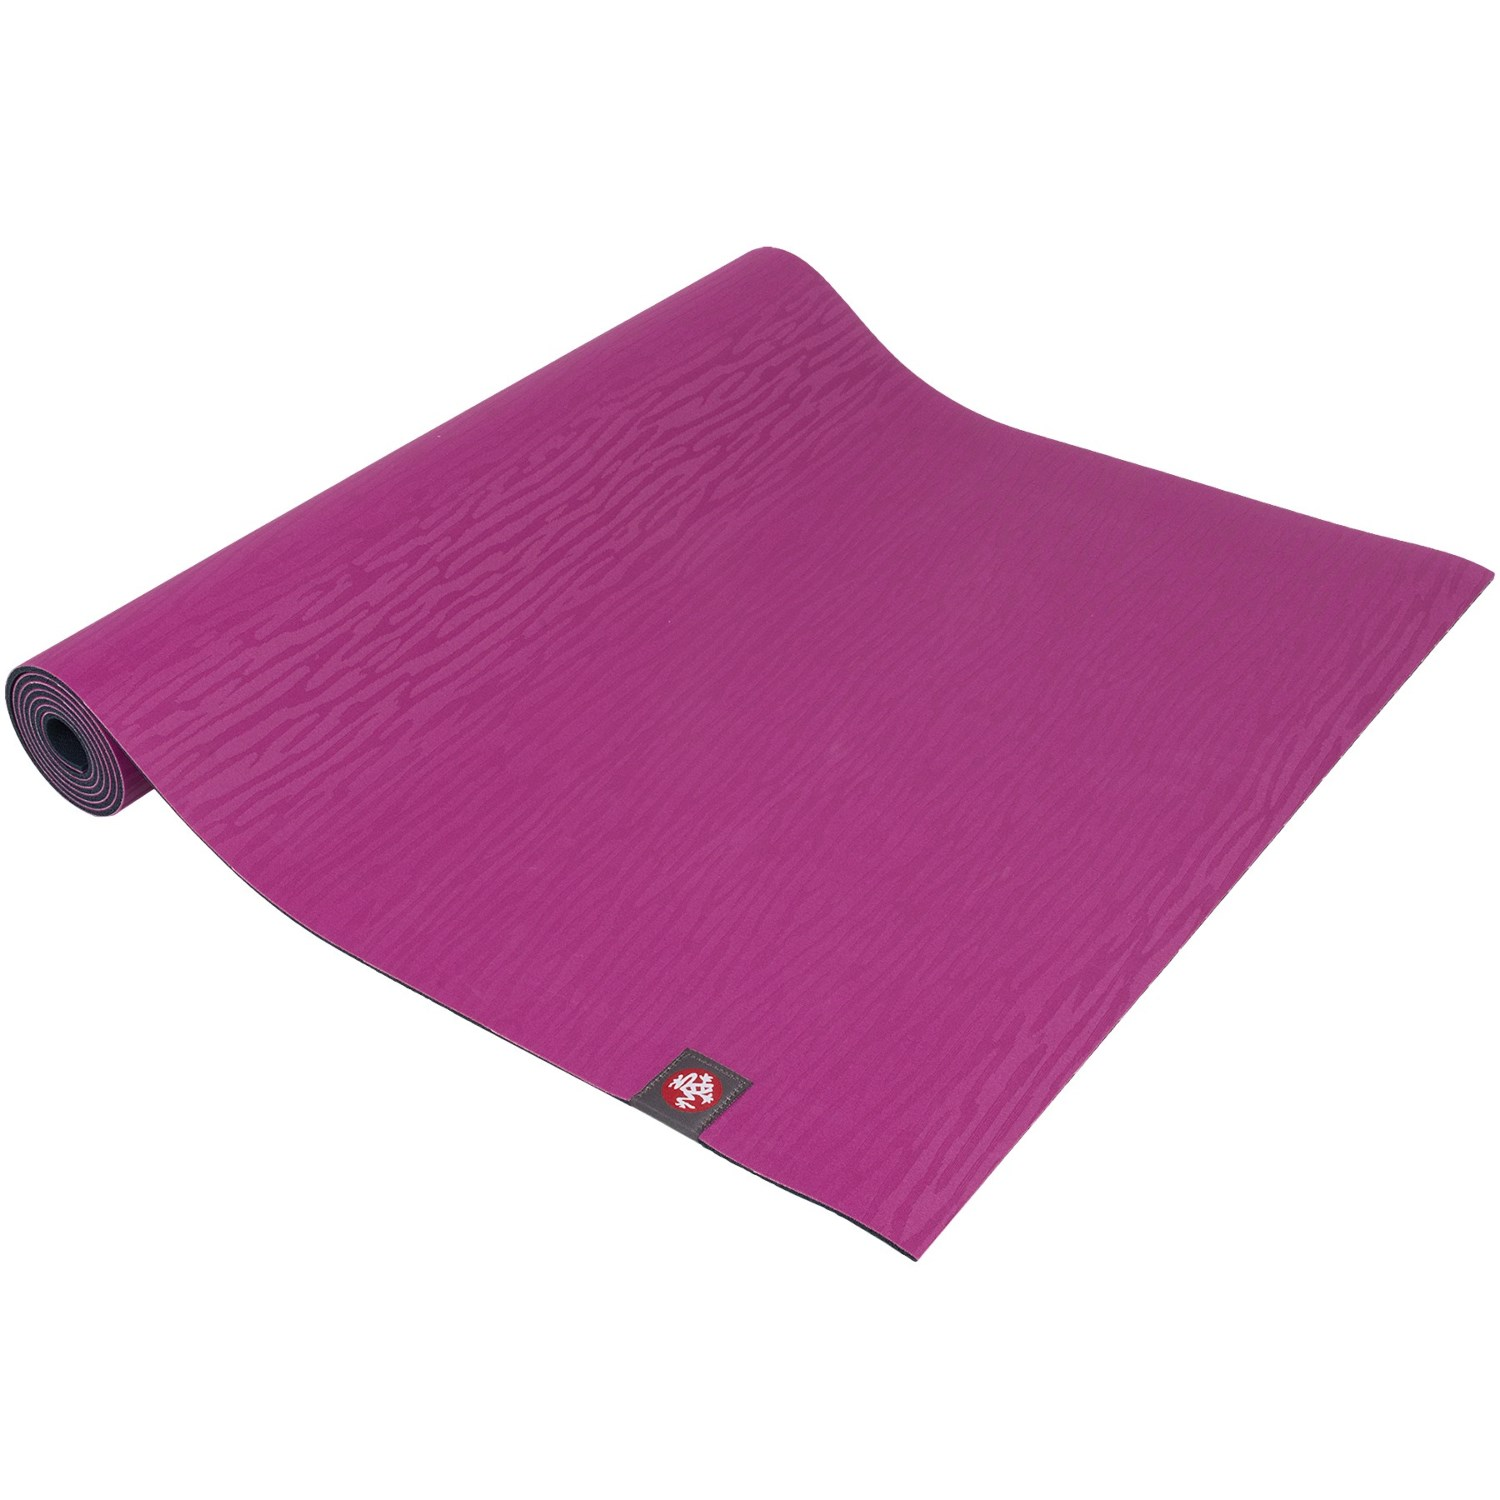 Manduka Eko Lite Yoga Mat 4mm Save 56